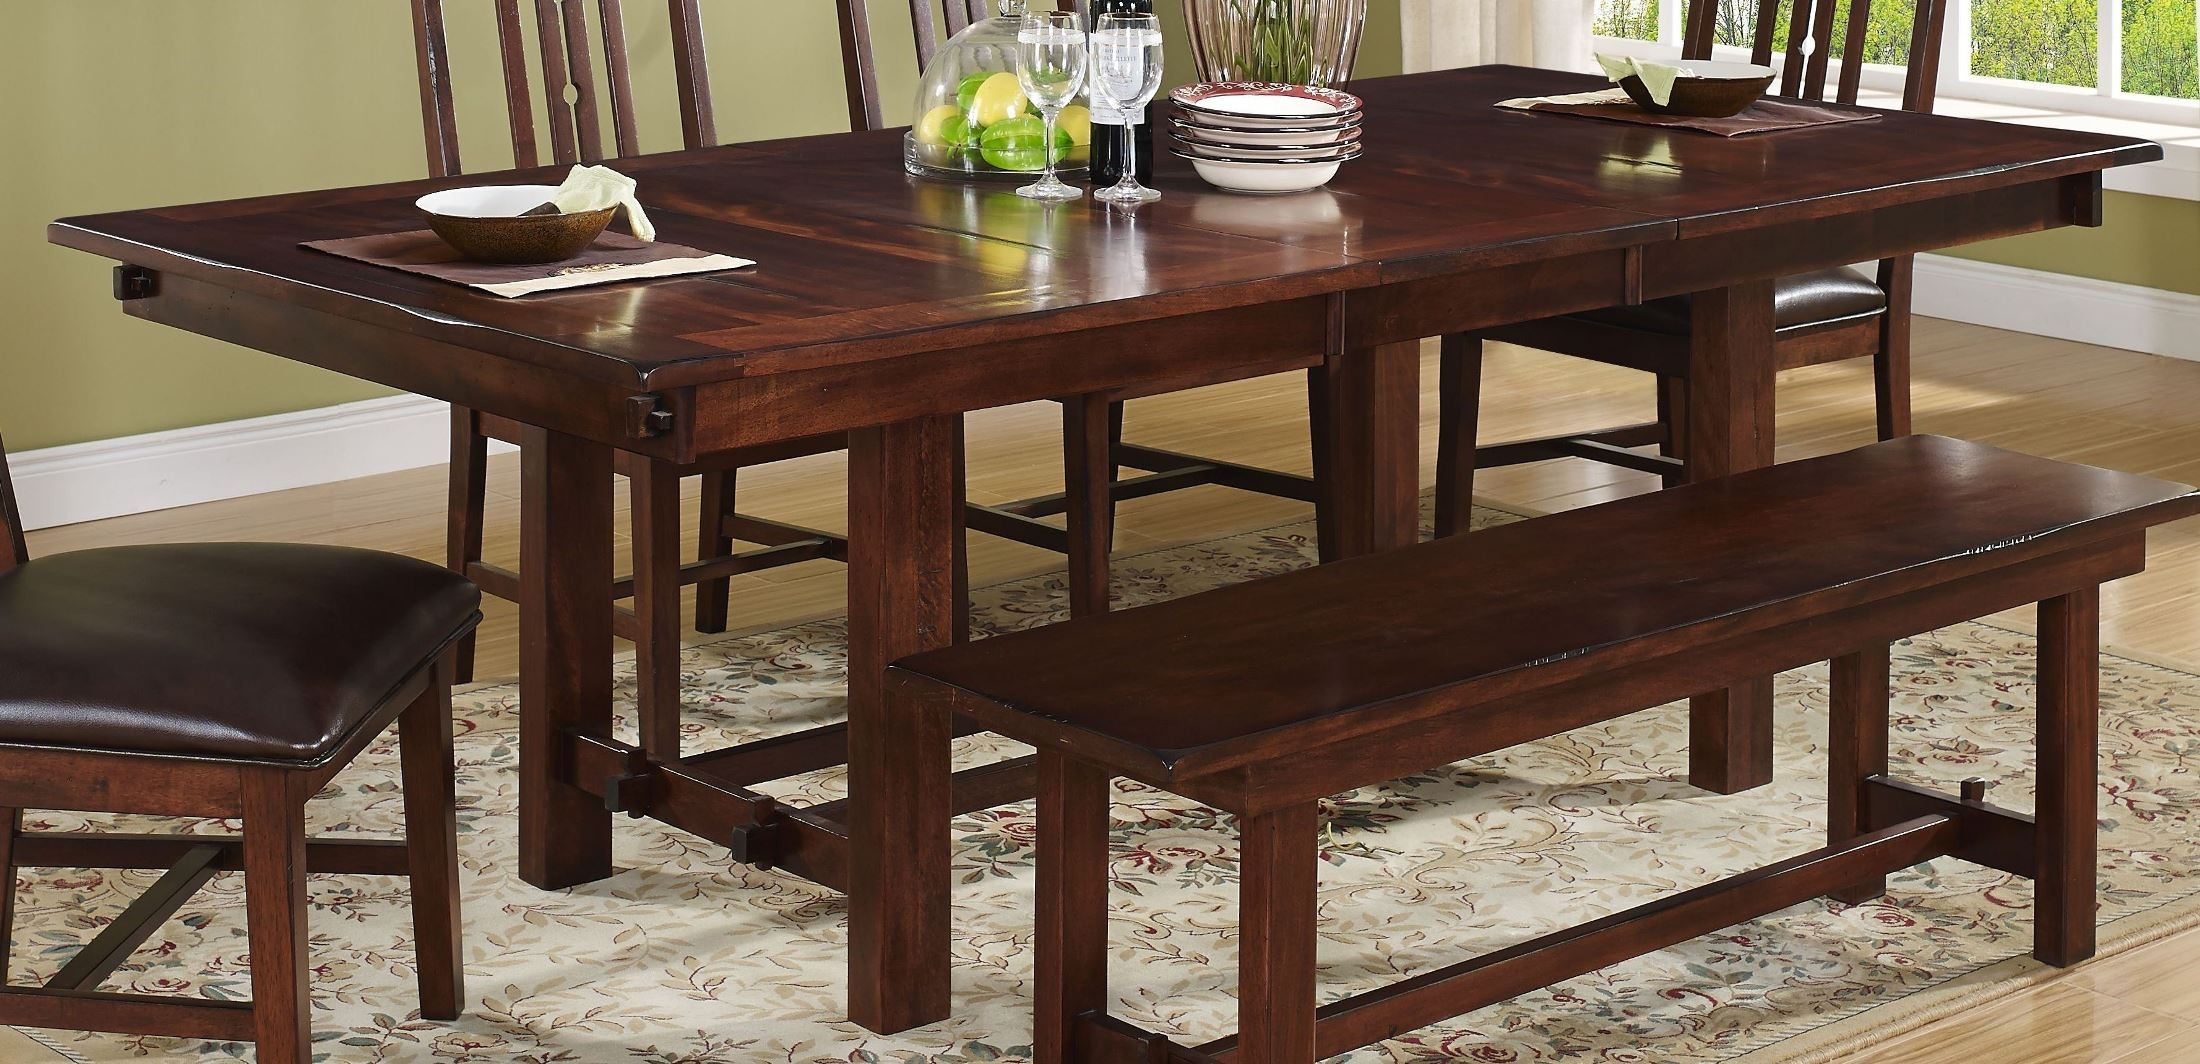 Madera African Chestnut Dining Table From New Classics 40